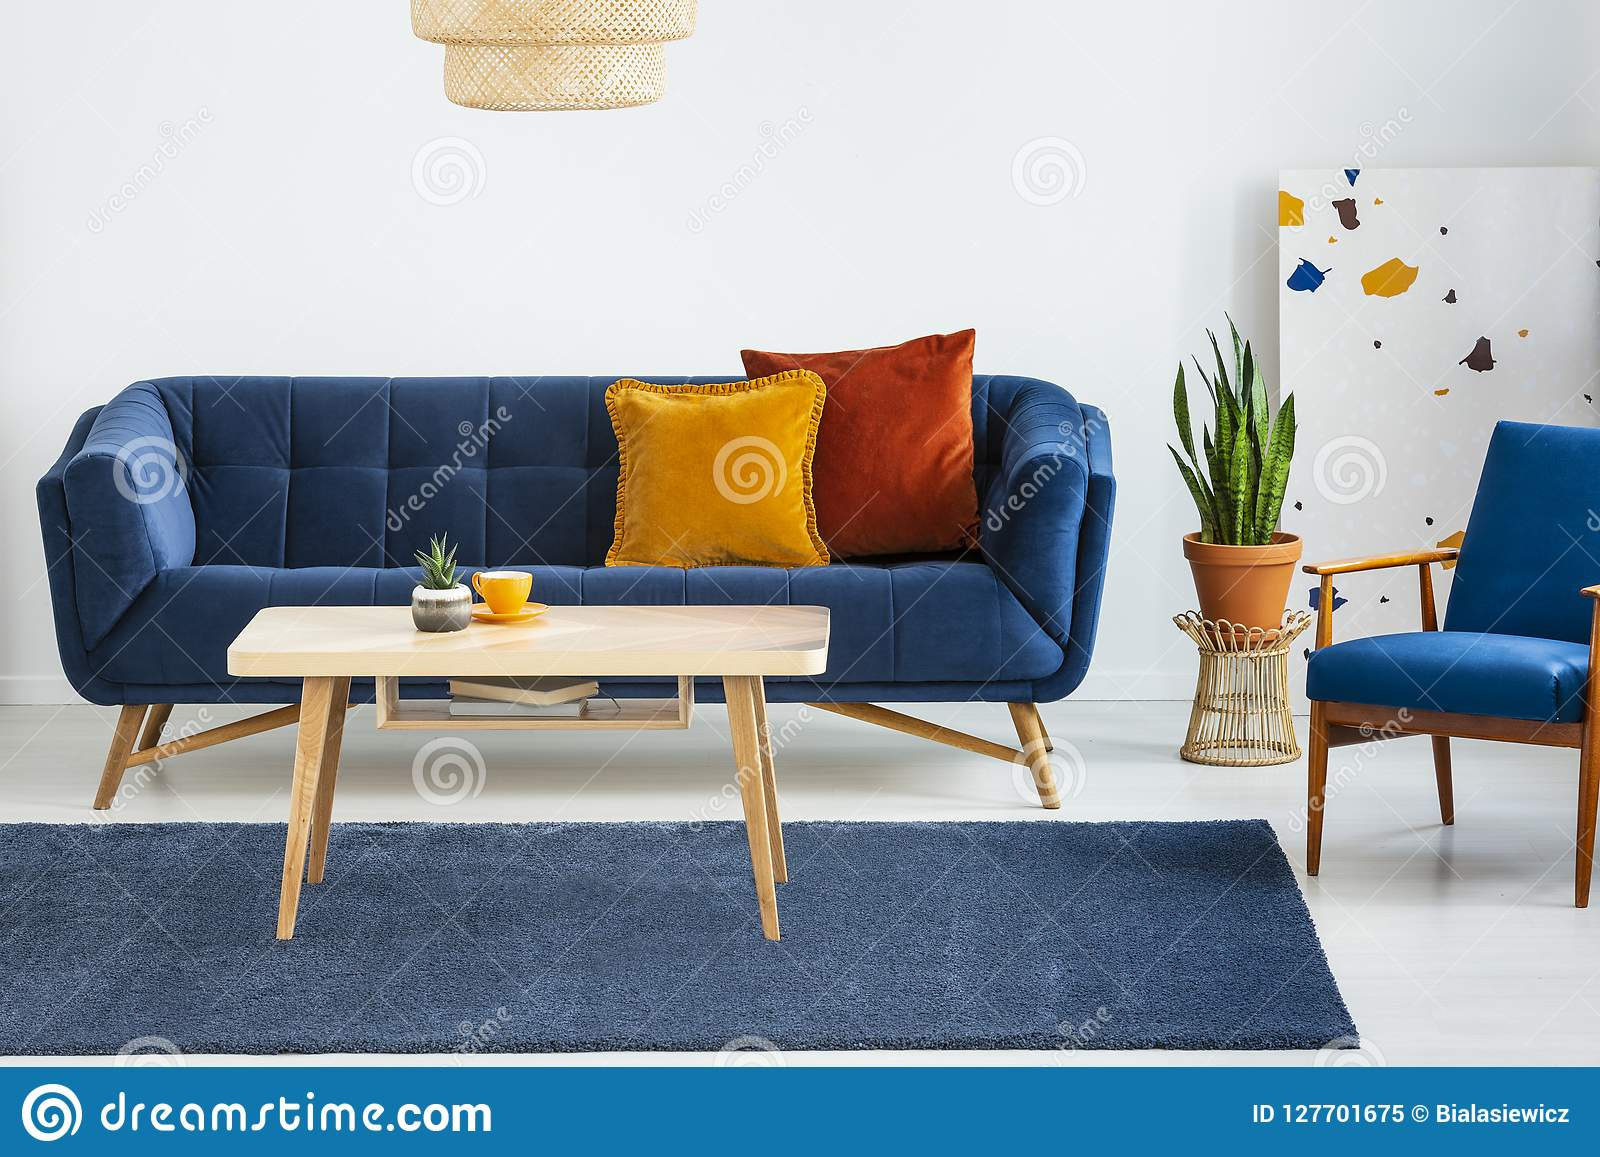 Armchair Next To Blue Sofa With Cushions And Wooden Table In Flat